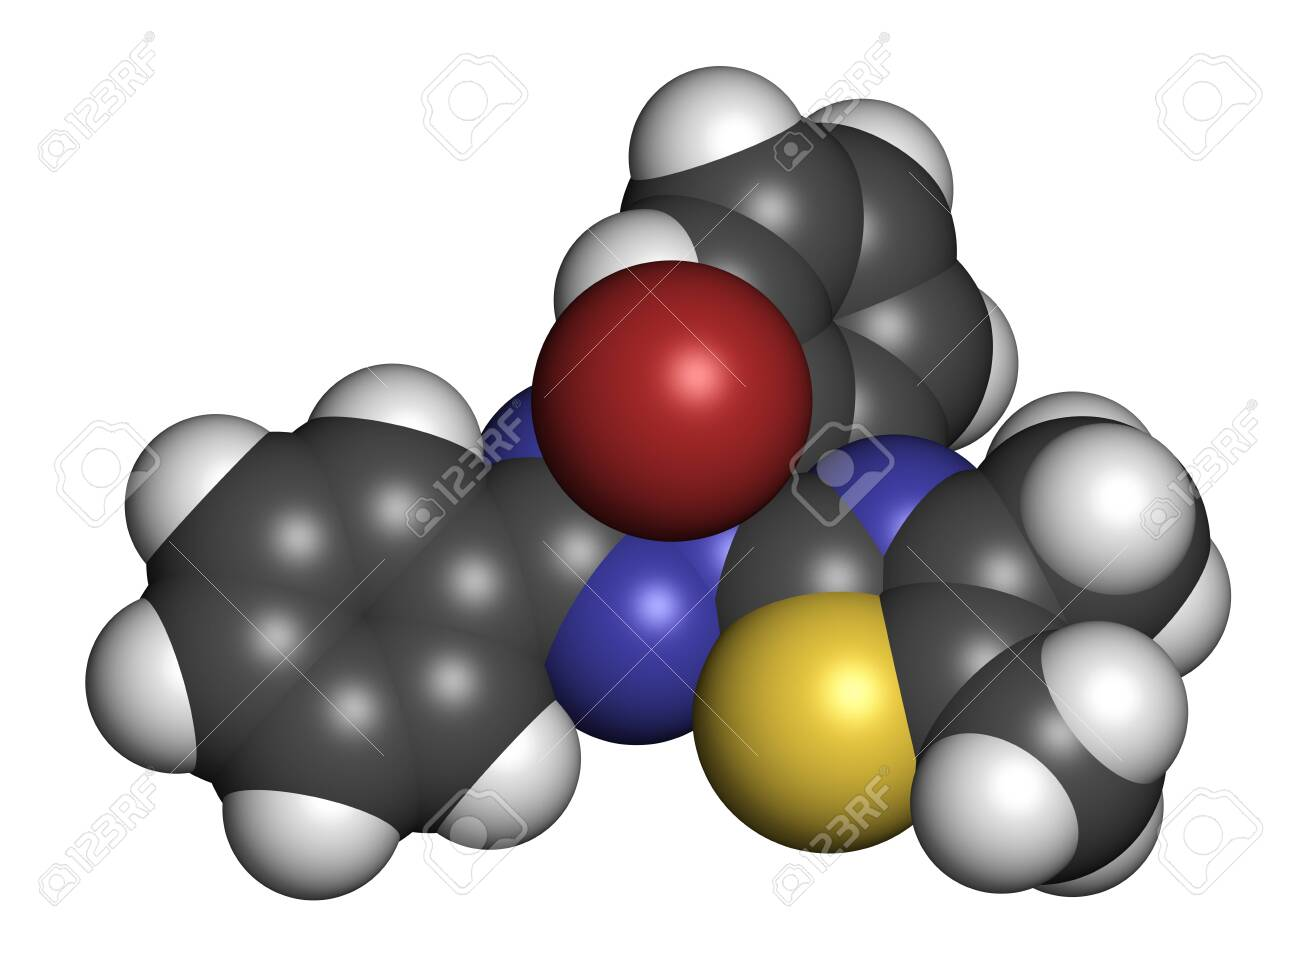 MTT yellow tetrazole dye molecule. Used in MTT assay, used to measure cytotoxicity and cell metabolic activity. 3D rendering. Atoms are represented as spheres with conventional color coding: hydrogen (white), carbon (grey), oxygen (red), nitrogen (blue), sulfur (yellow), bromine (brown). - 149103671